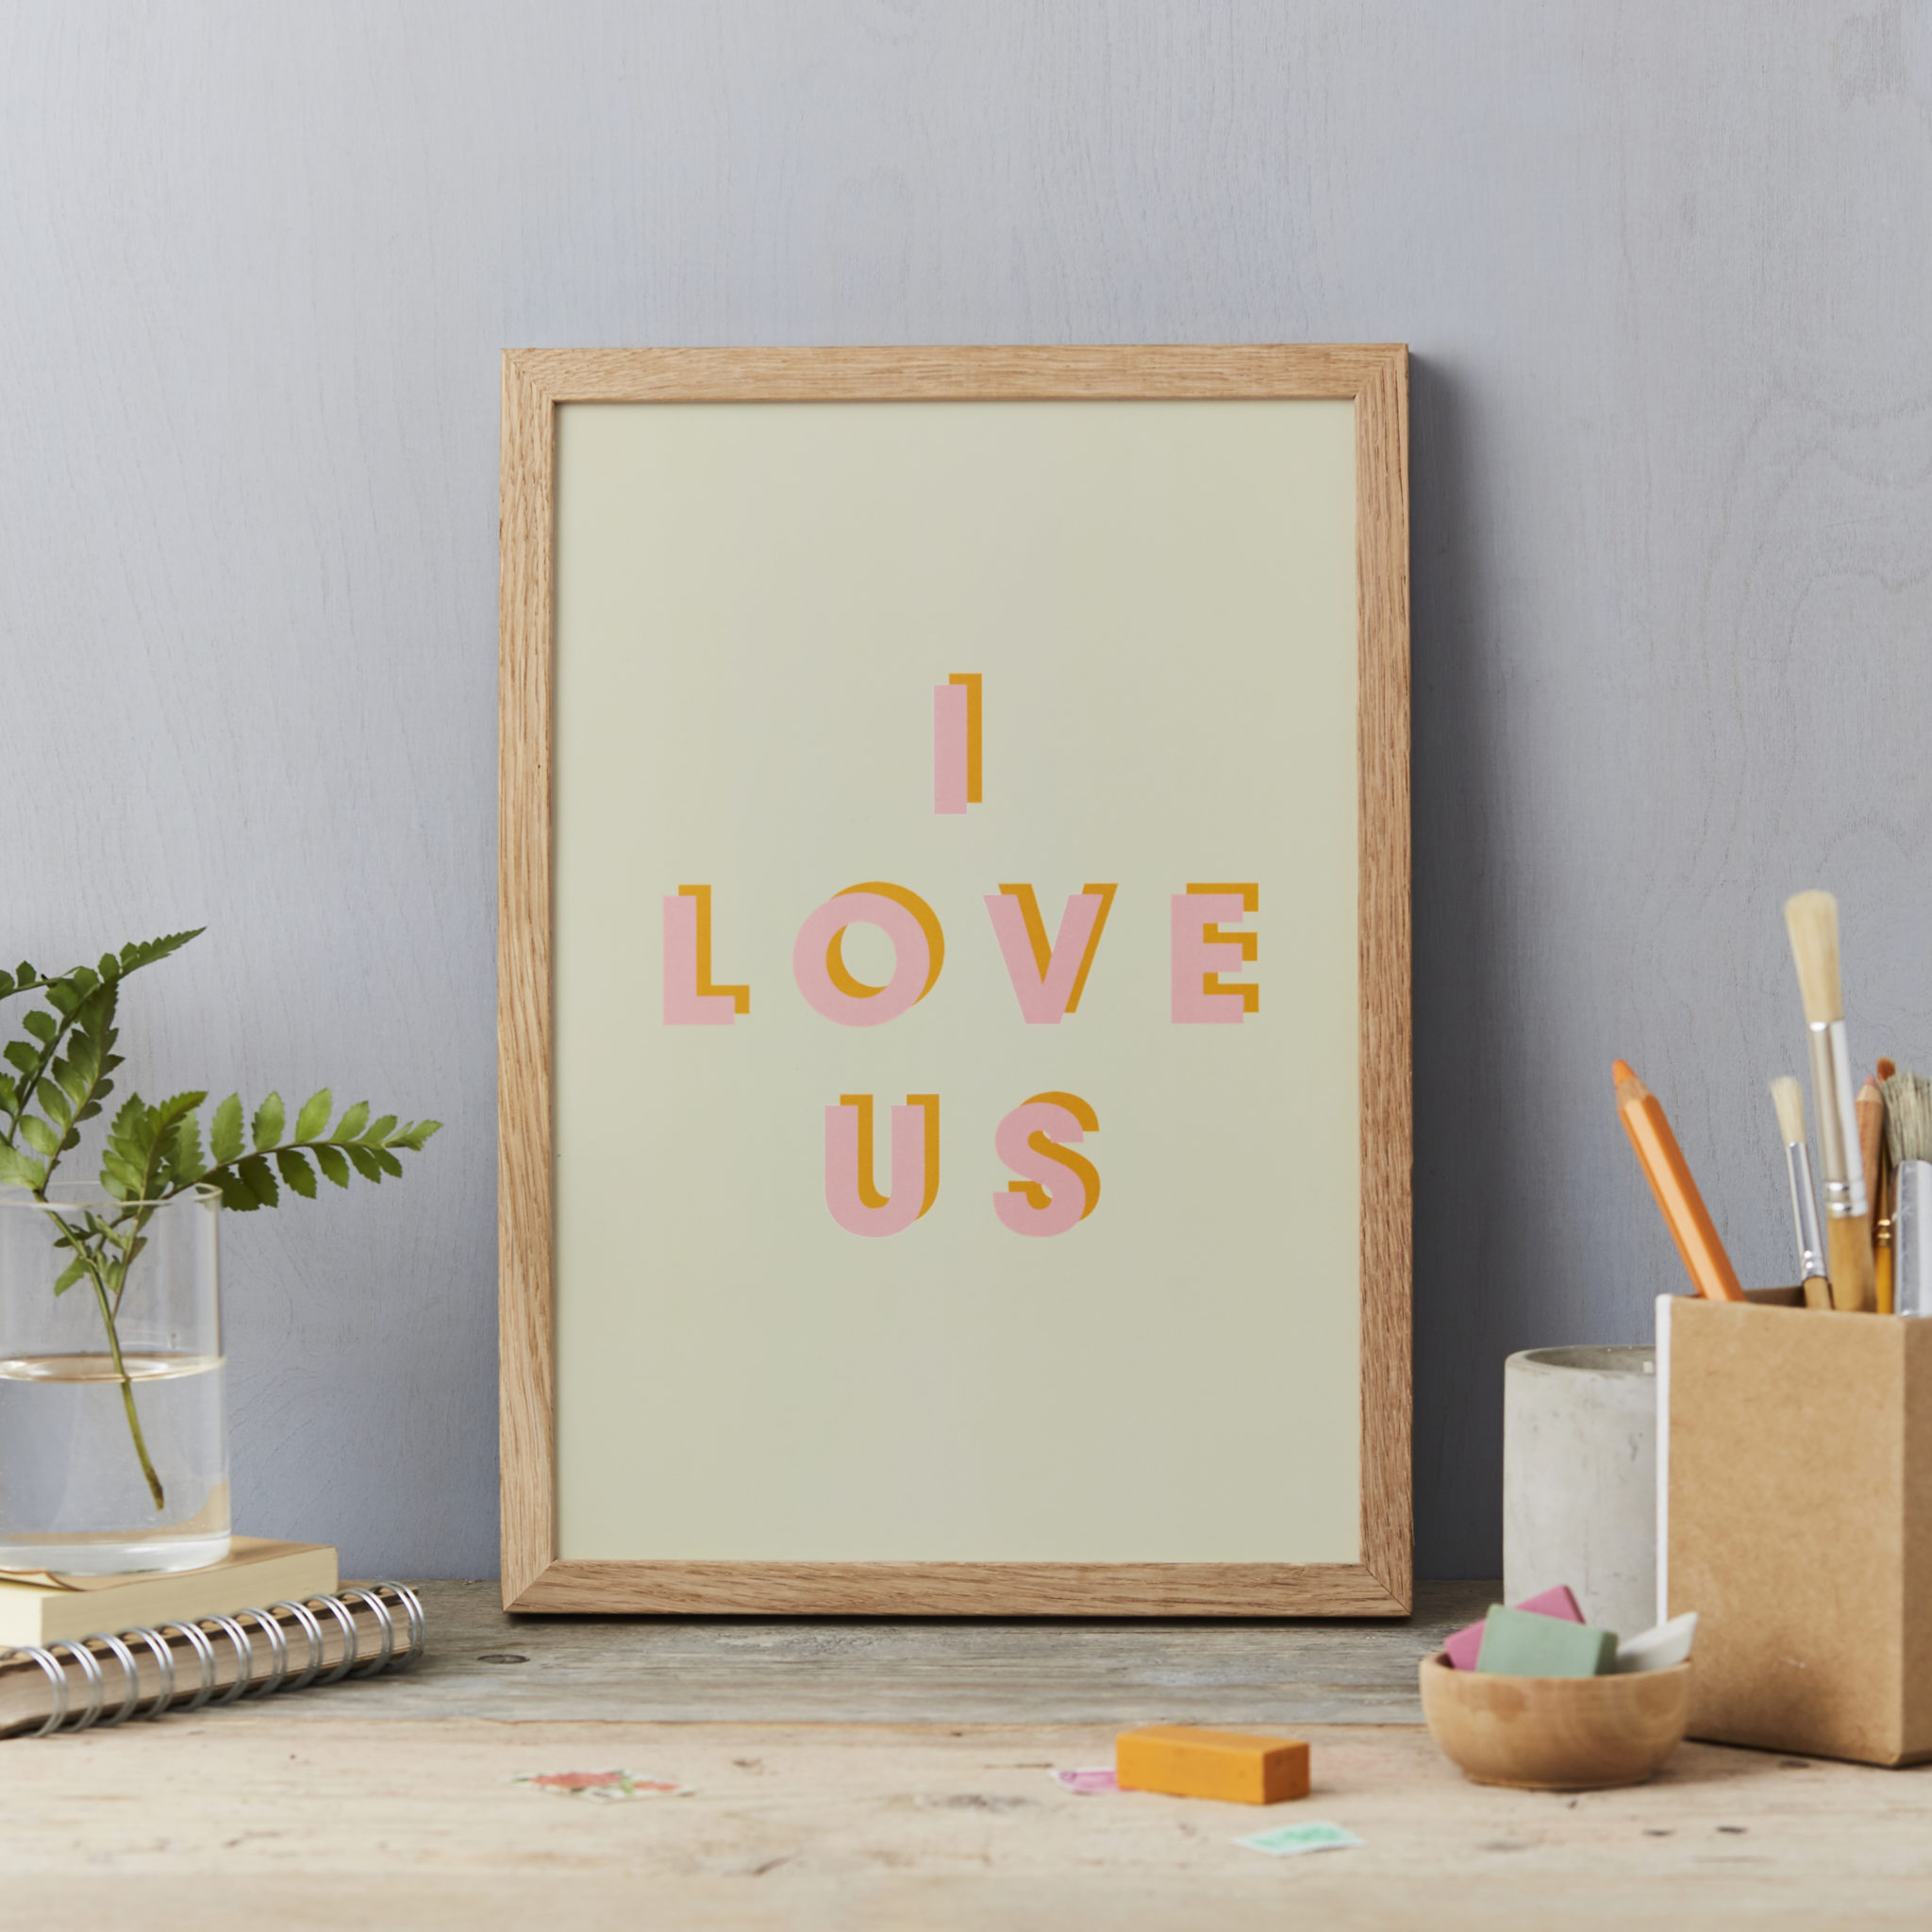 I love us A4 PRINT - pink and orange